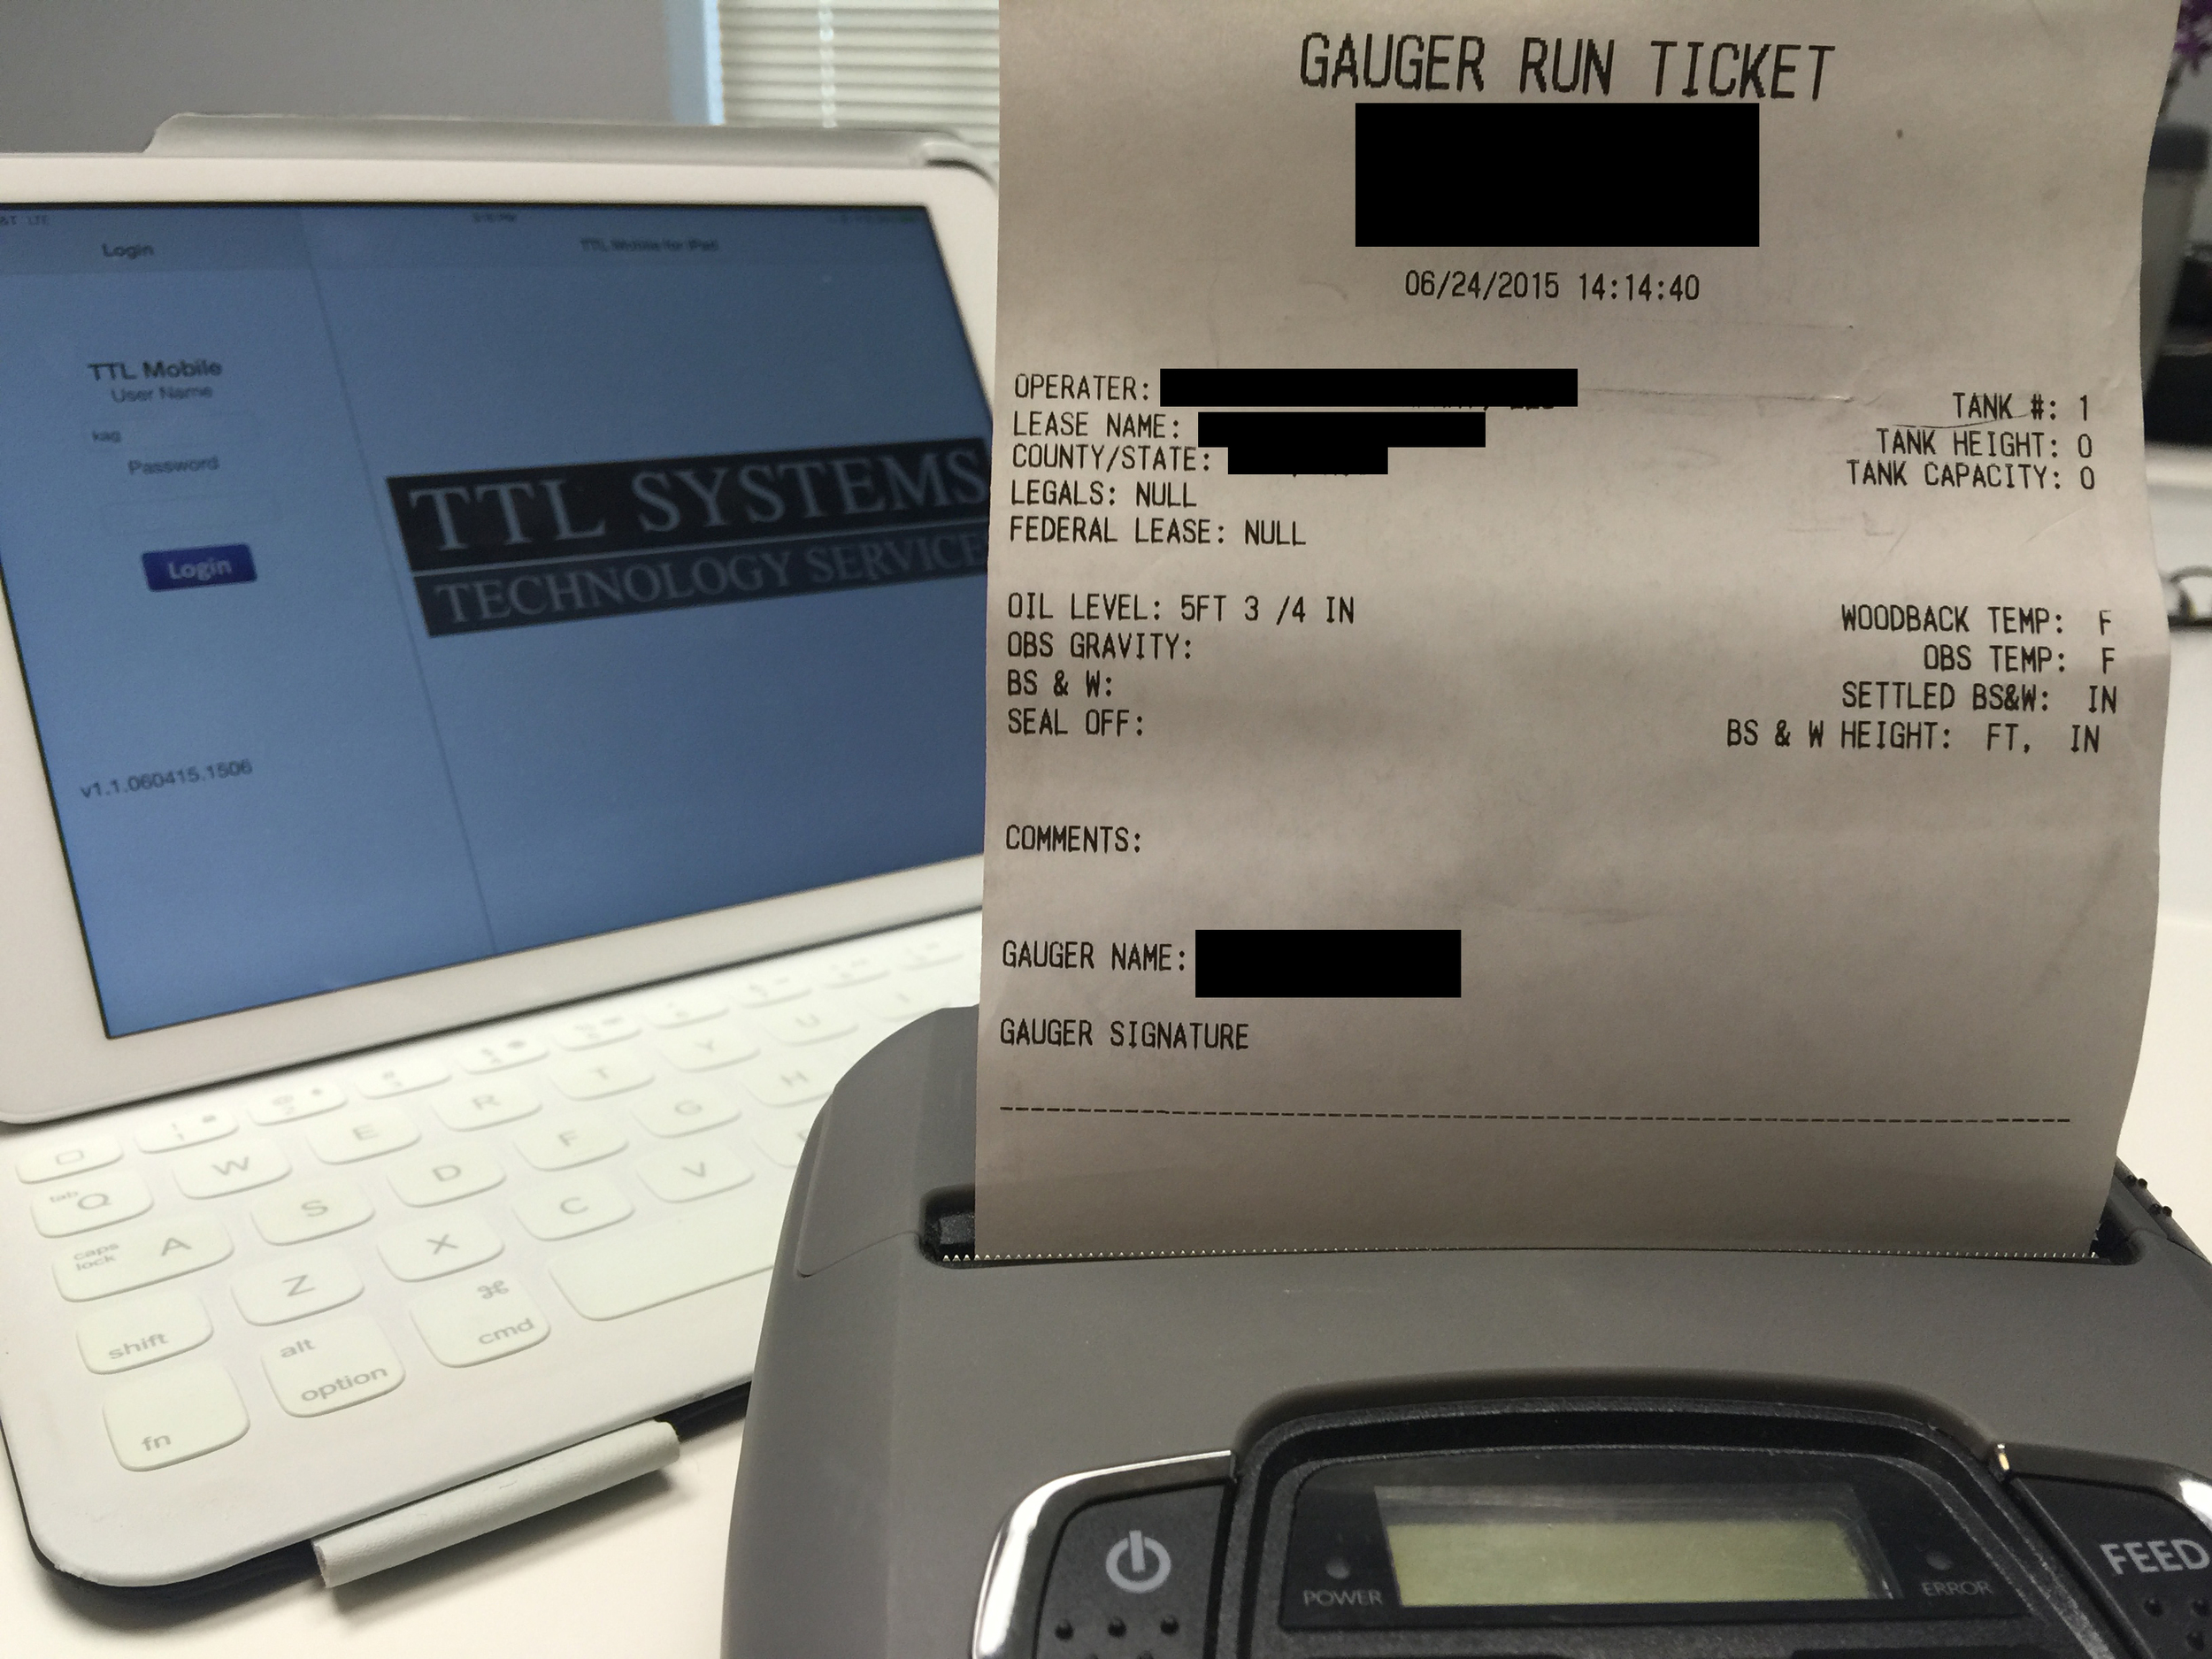 DeliveryReceipt.jpg